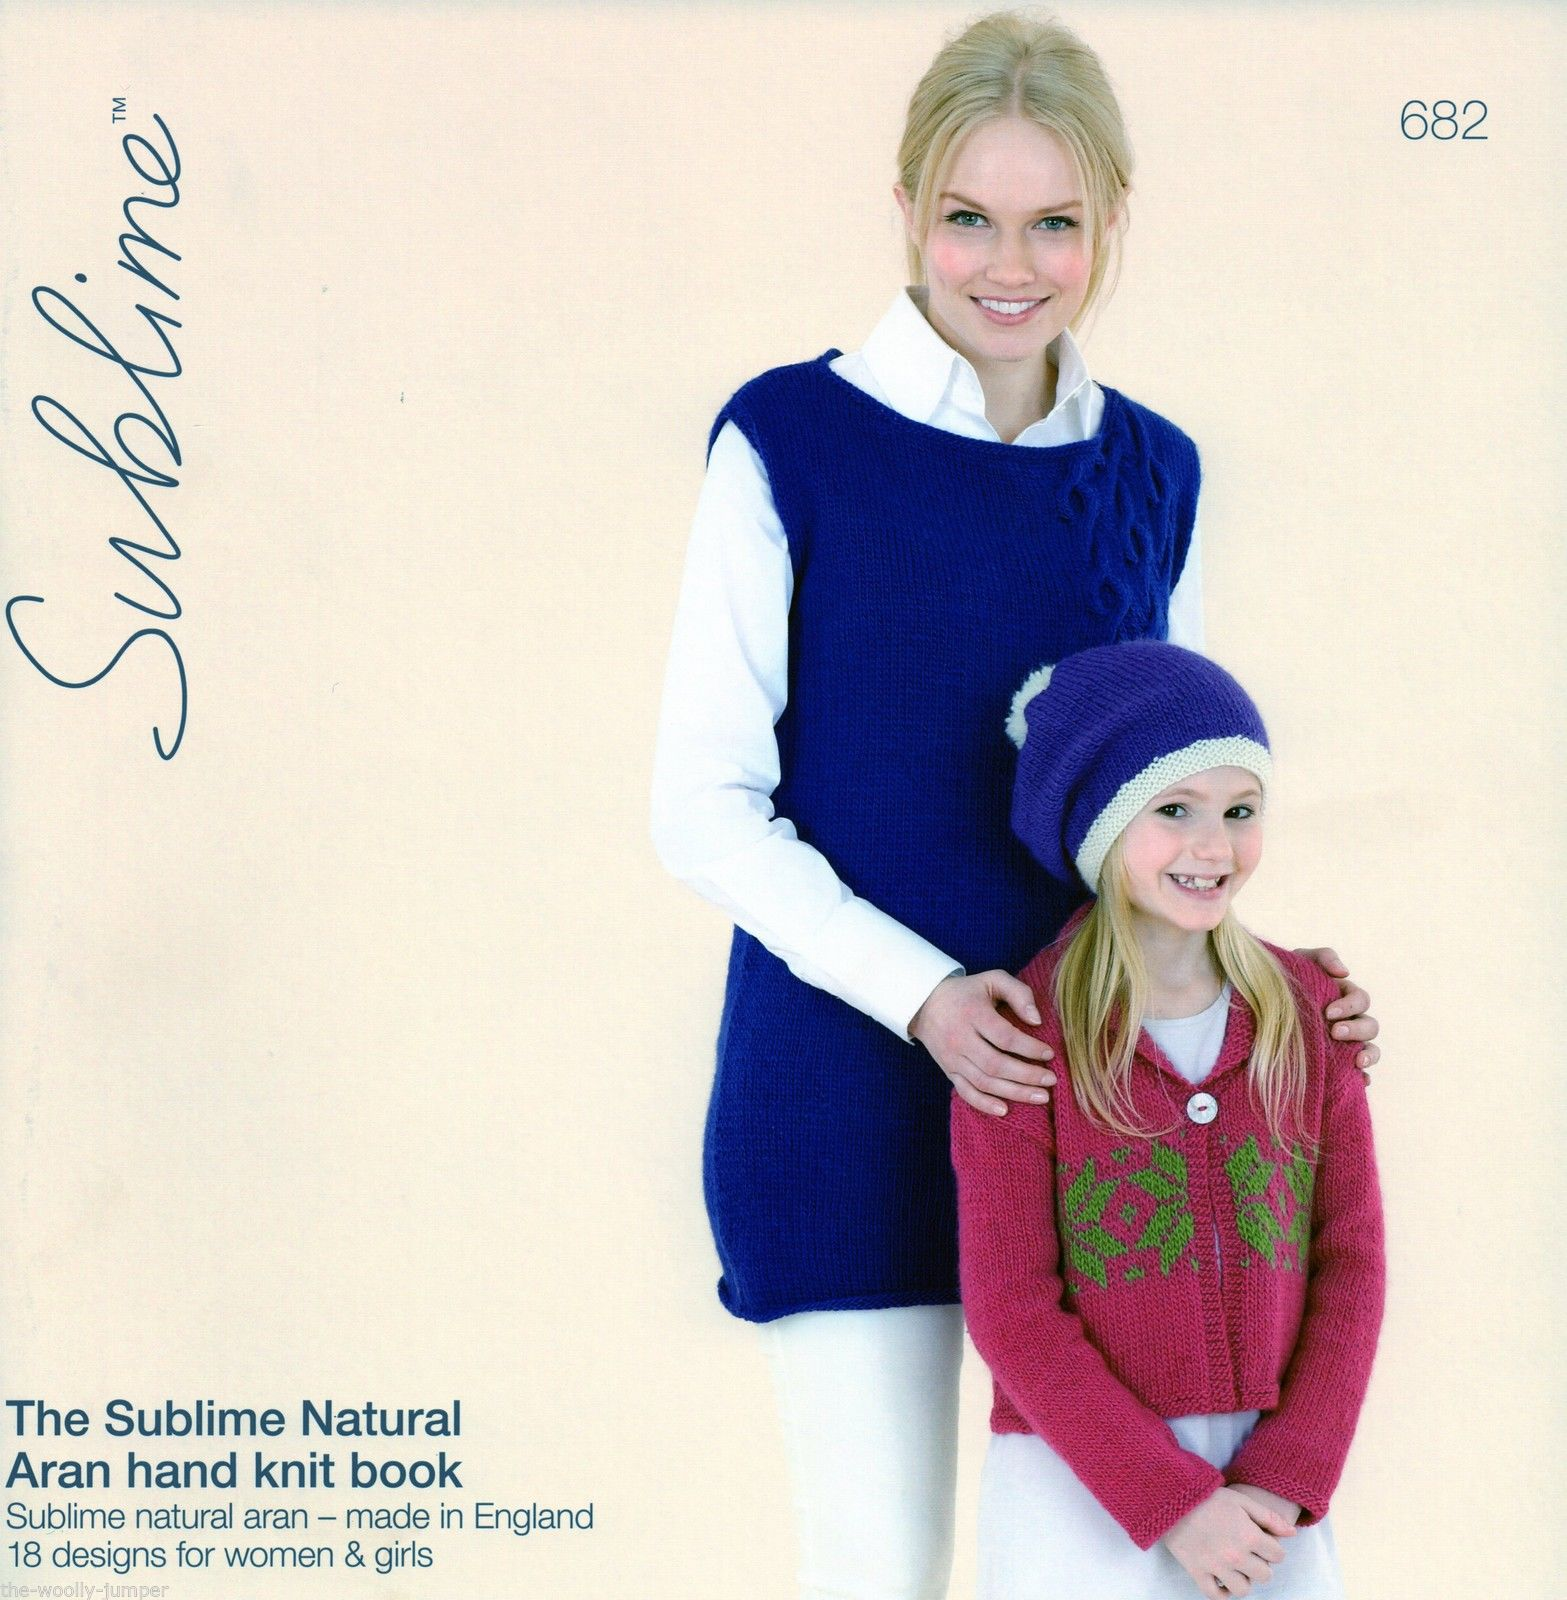 682 - THE SUBLIME NATURAL ARAN HAND KNIT BOOK - 18 KNITTING PATTERN ...